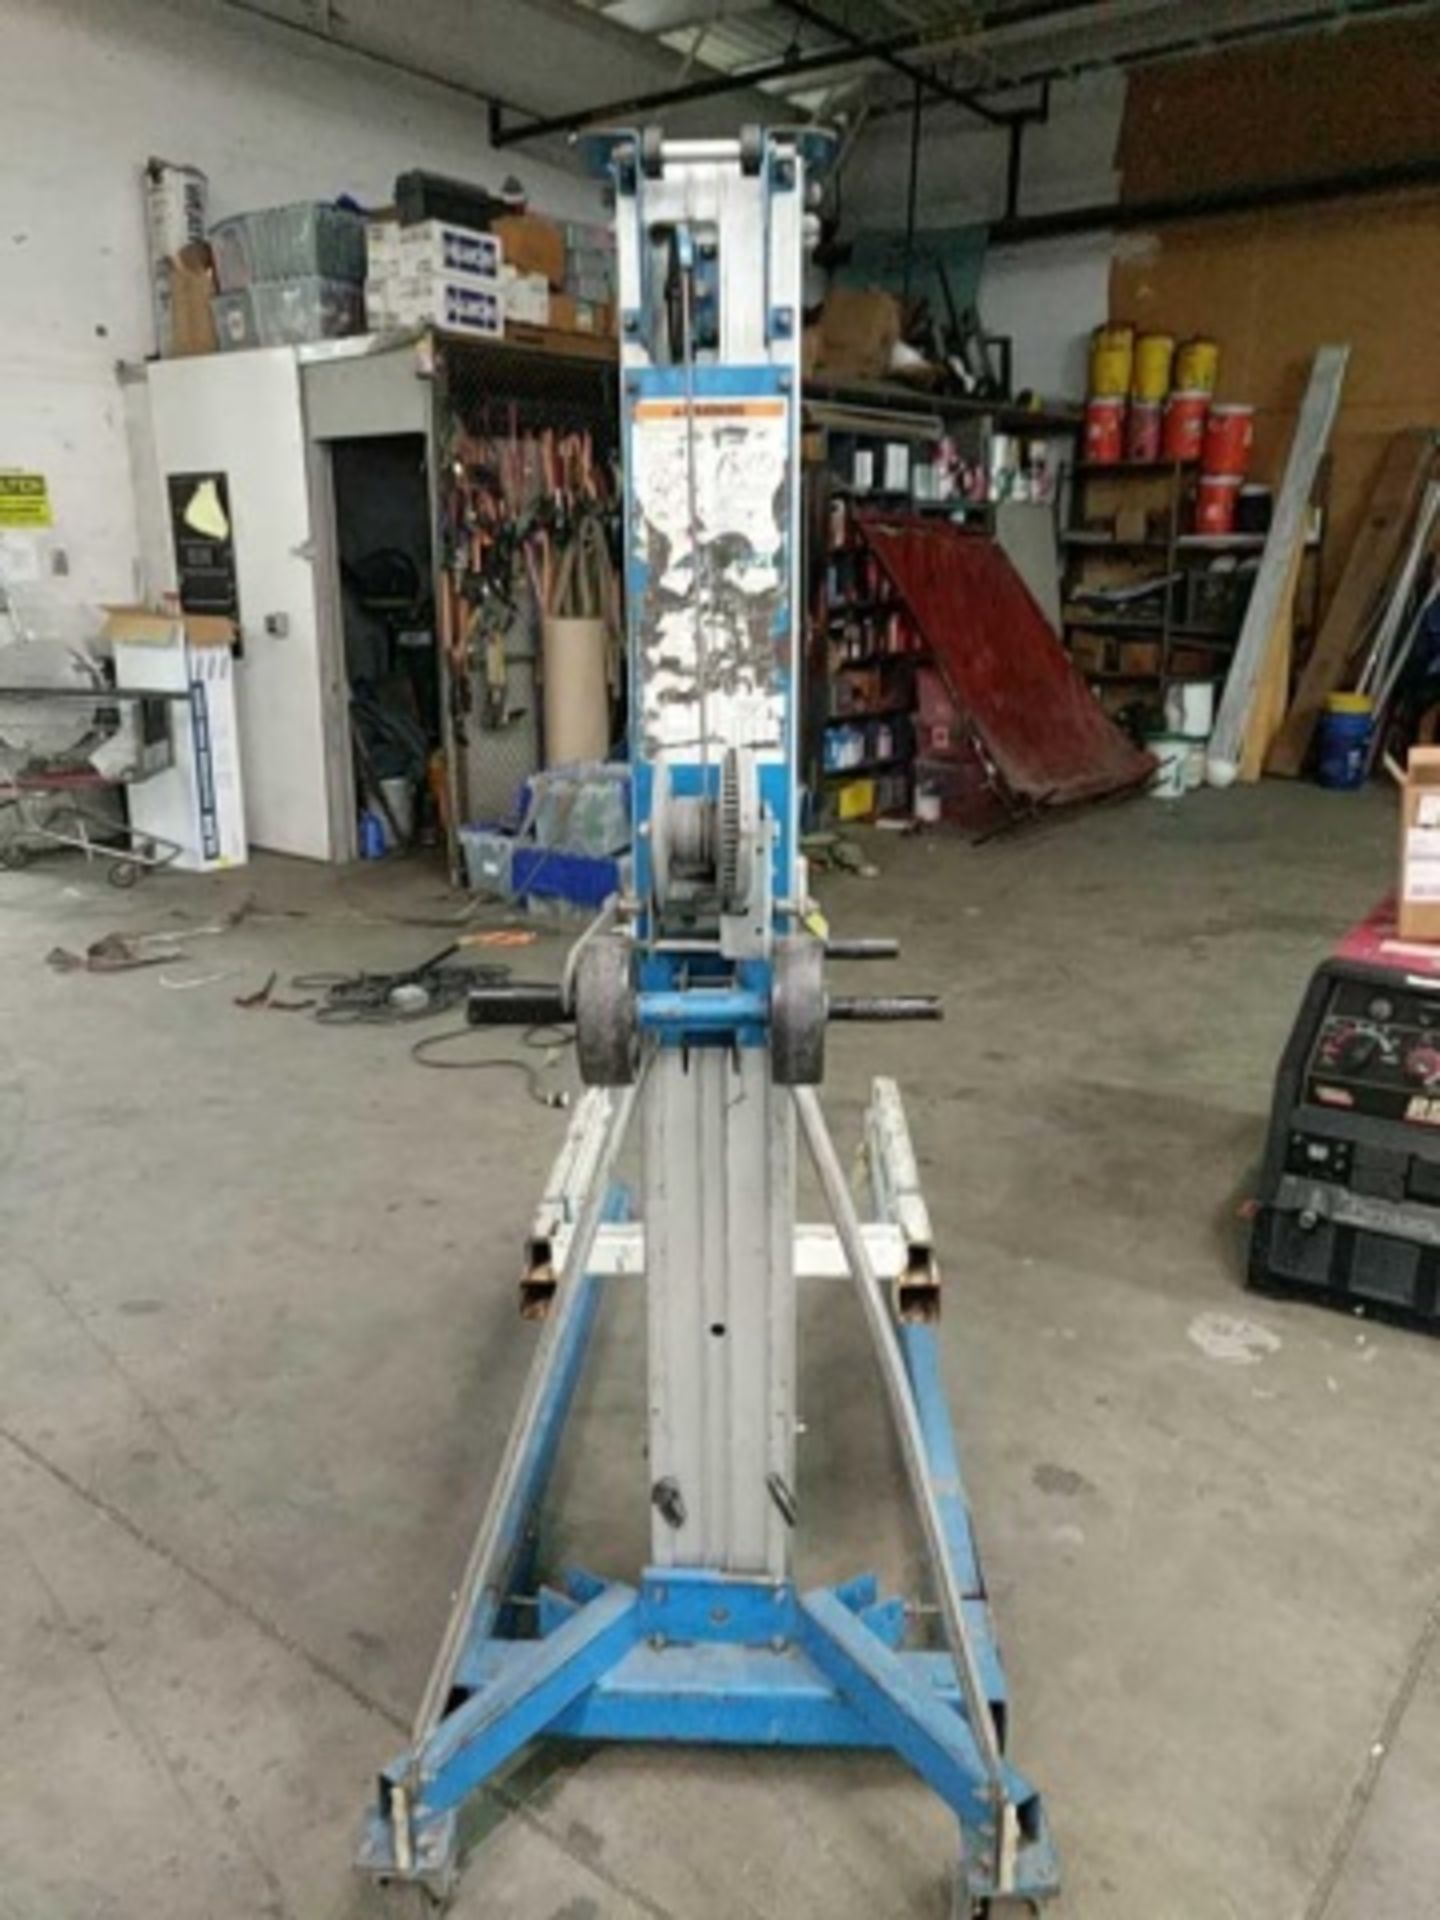 Genie Superlift Advantage Manual Material Lift - Image 2 of 5